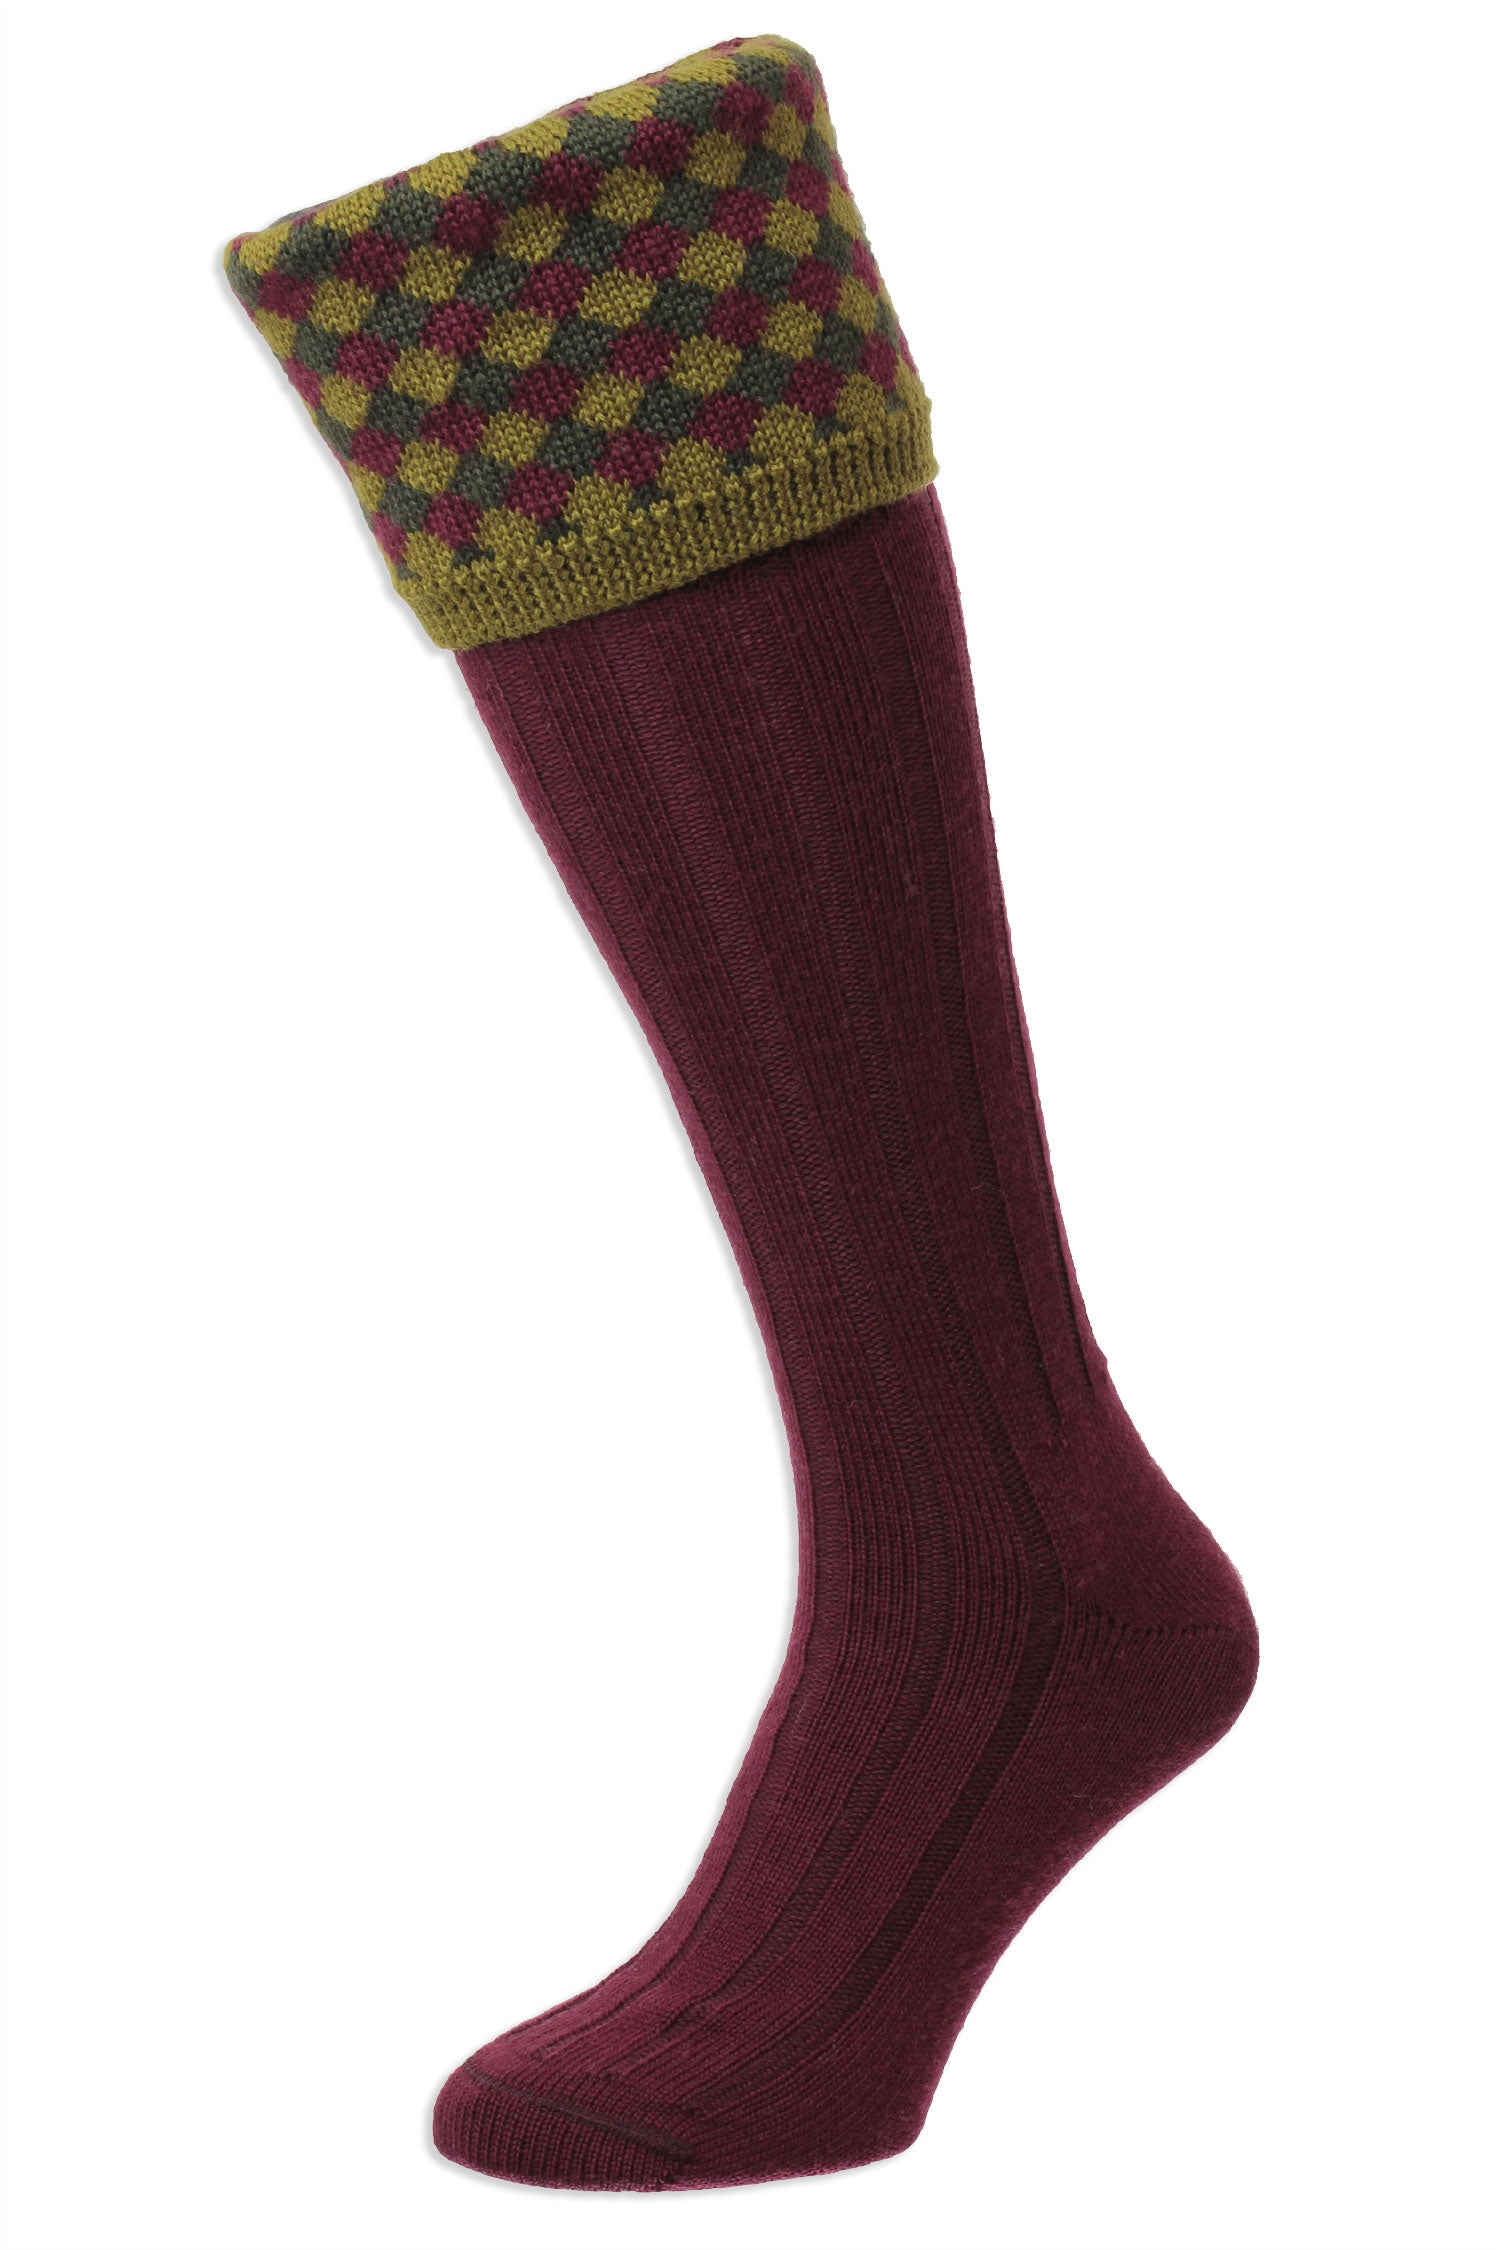 Wine shooting sock HJ Hall Hadleigh Shooting Sock | Harlequin Top